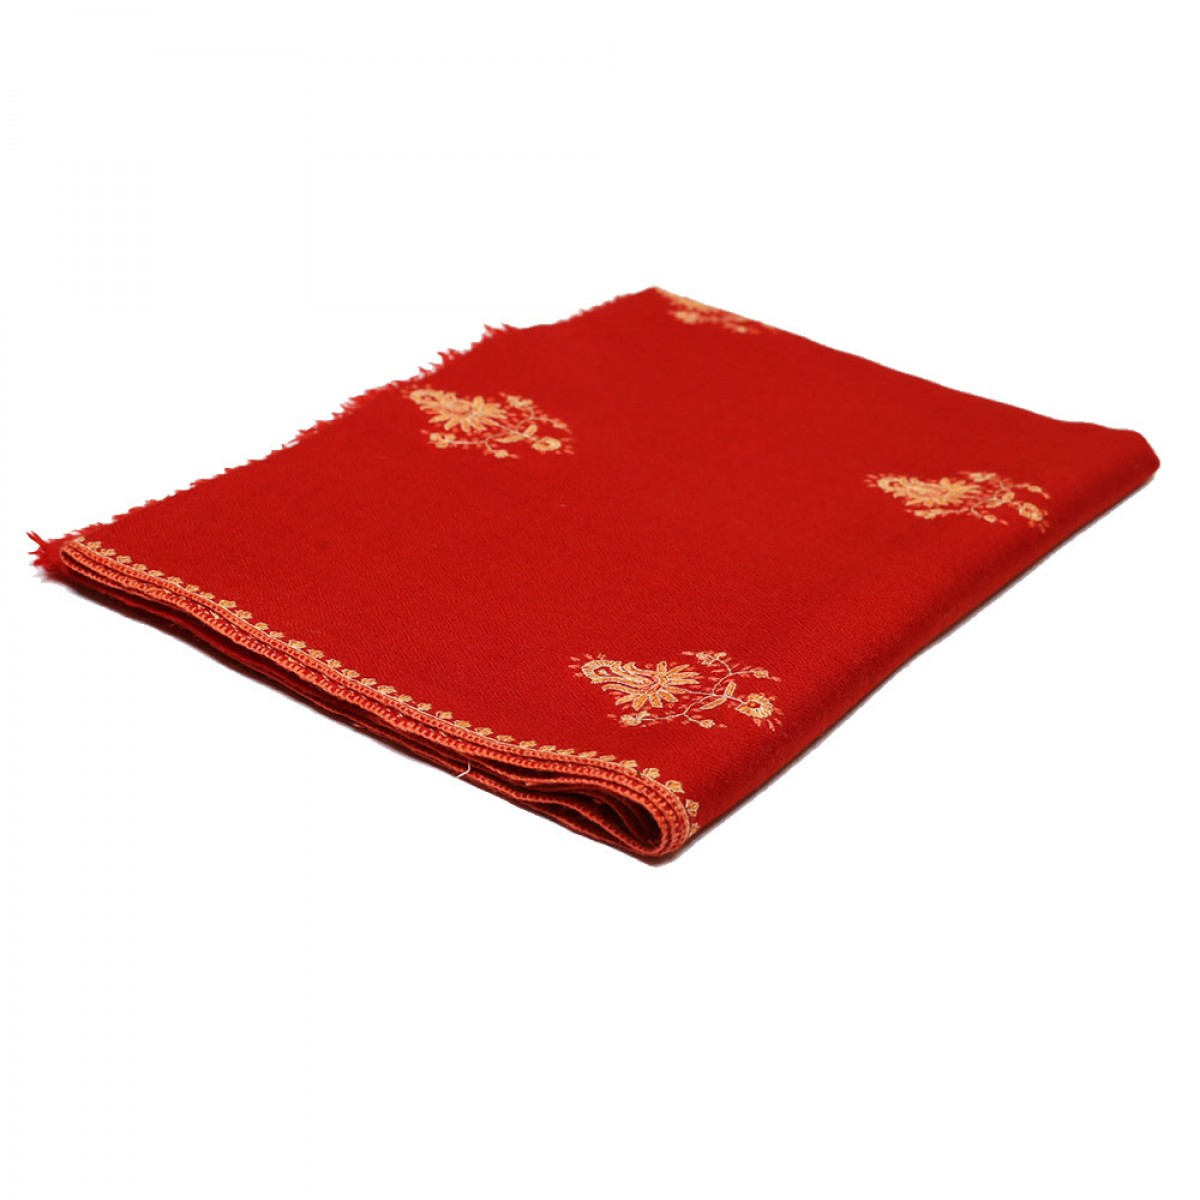 Embroidered Handloom Pashmina Stole - Candy Apple